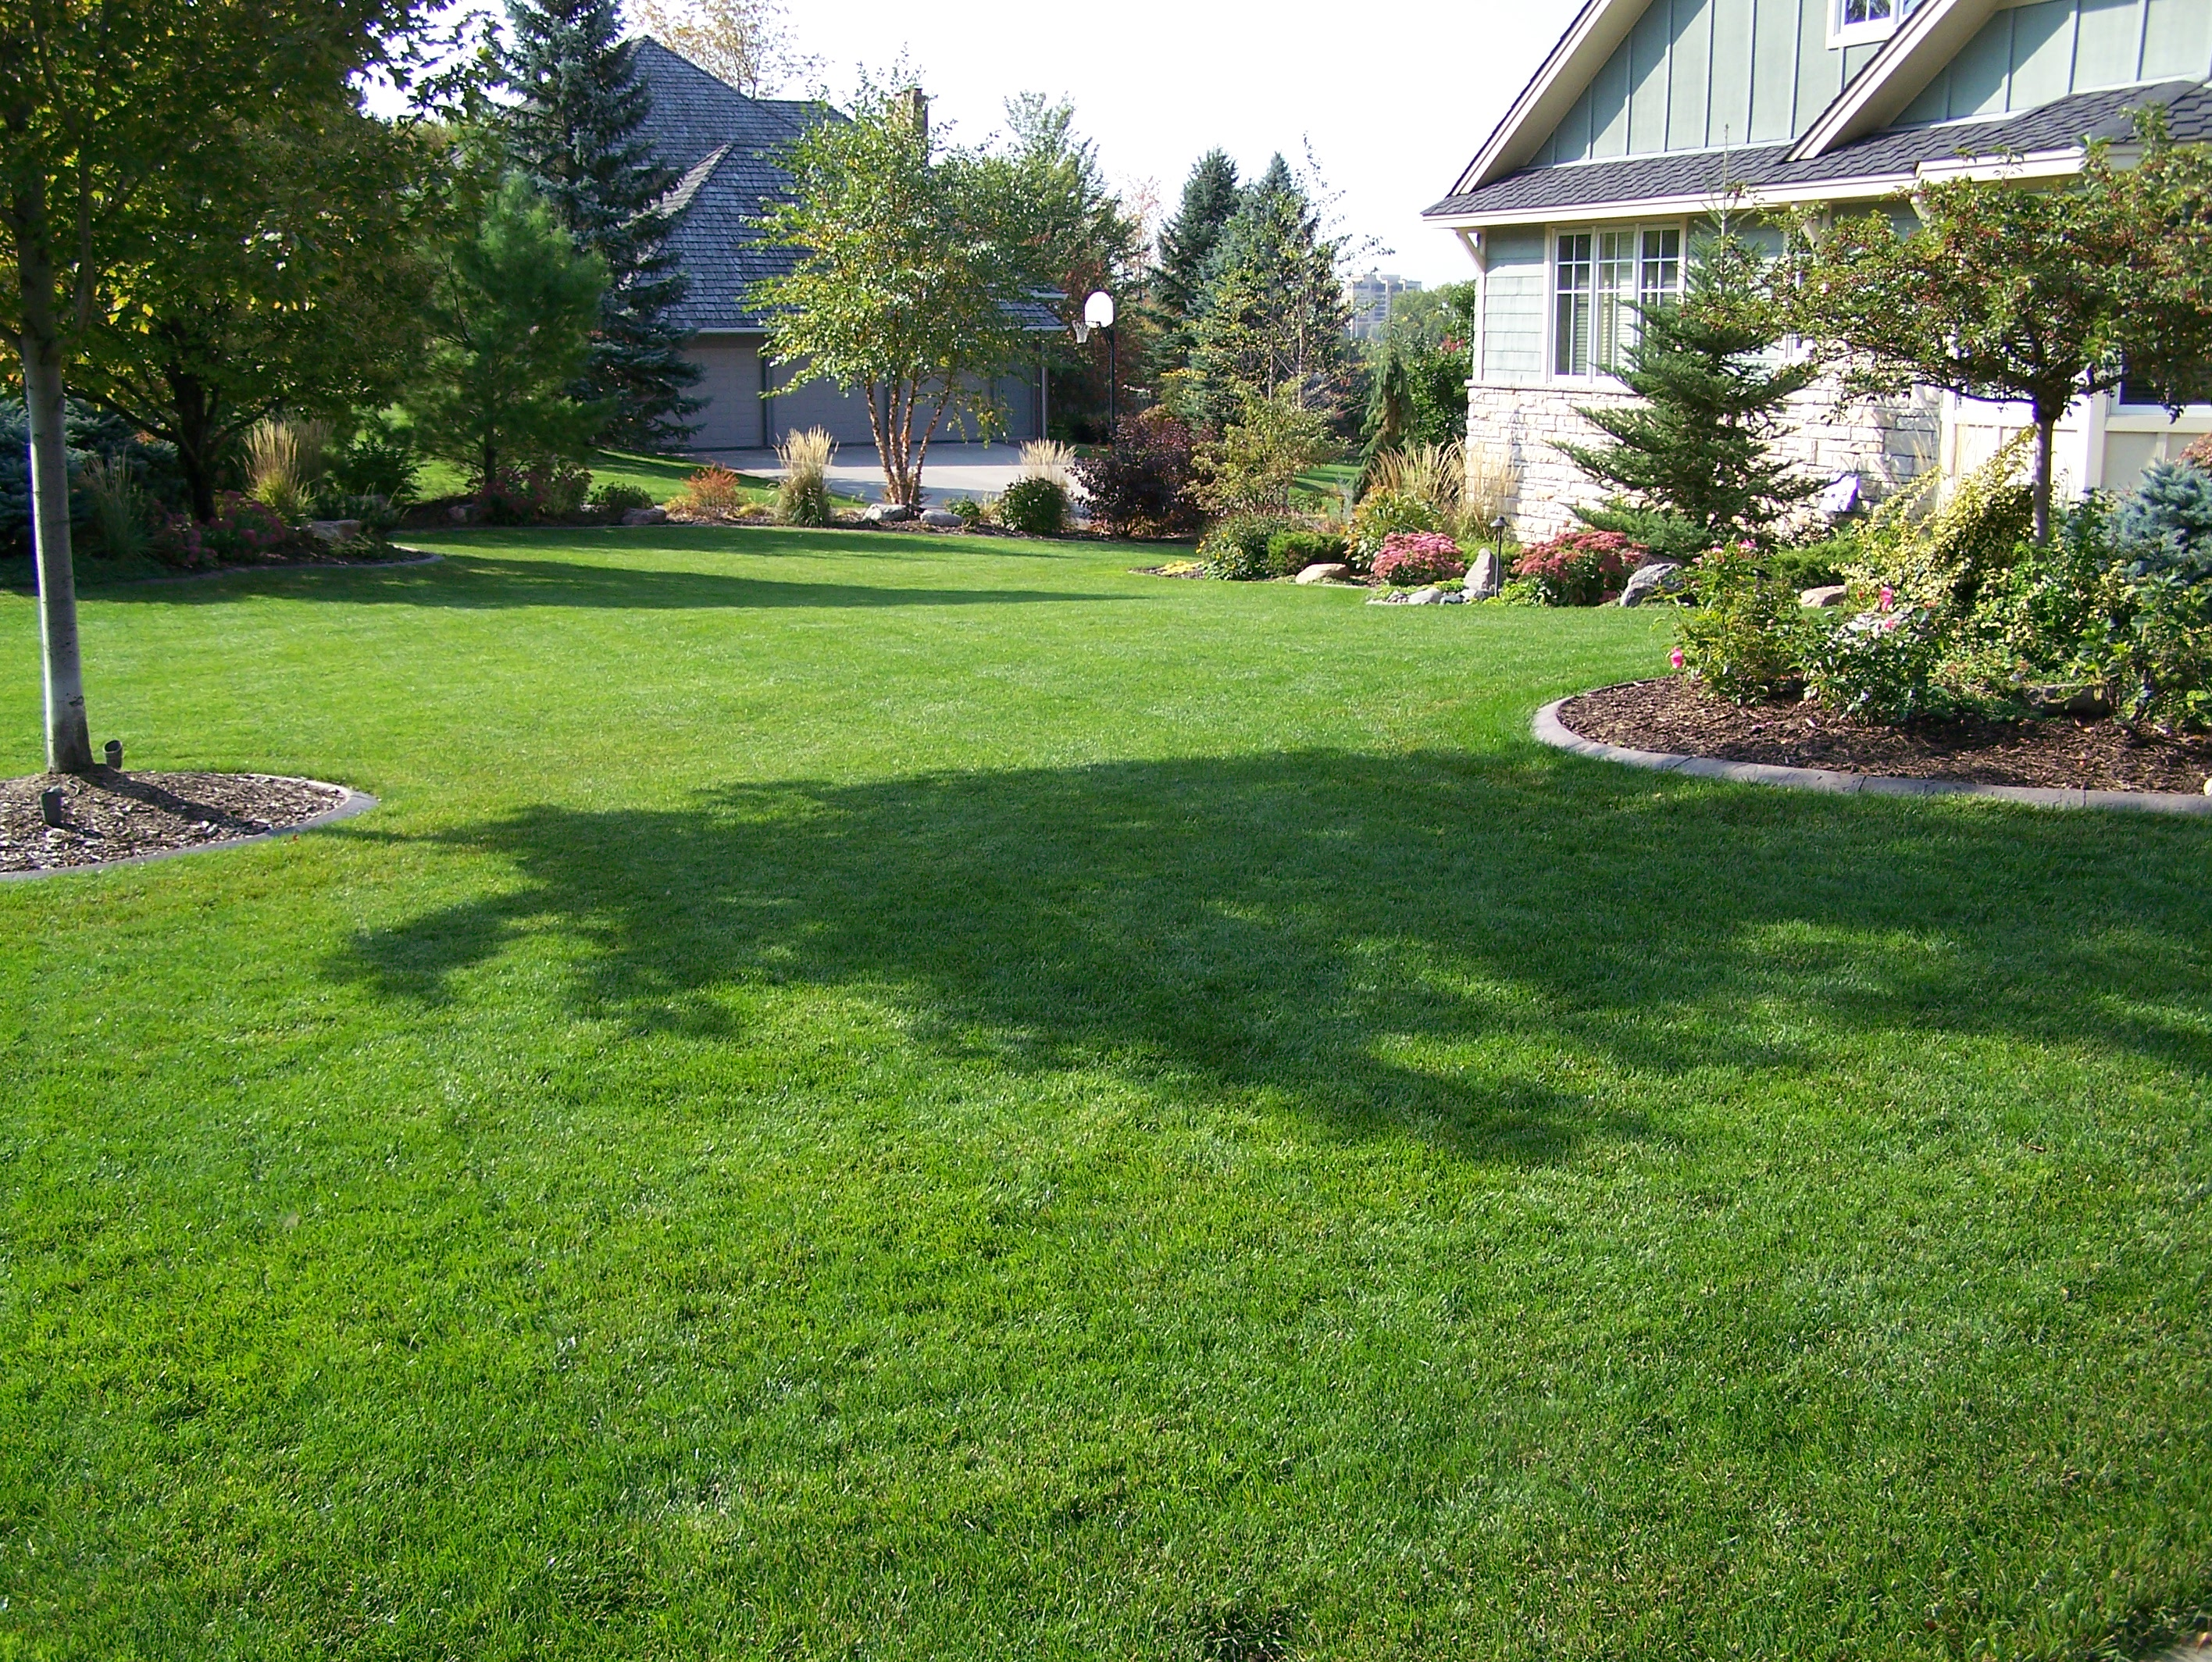 Spring Landscaping Tips minnesota spring lawn tips for getting your yard readygreat goats